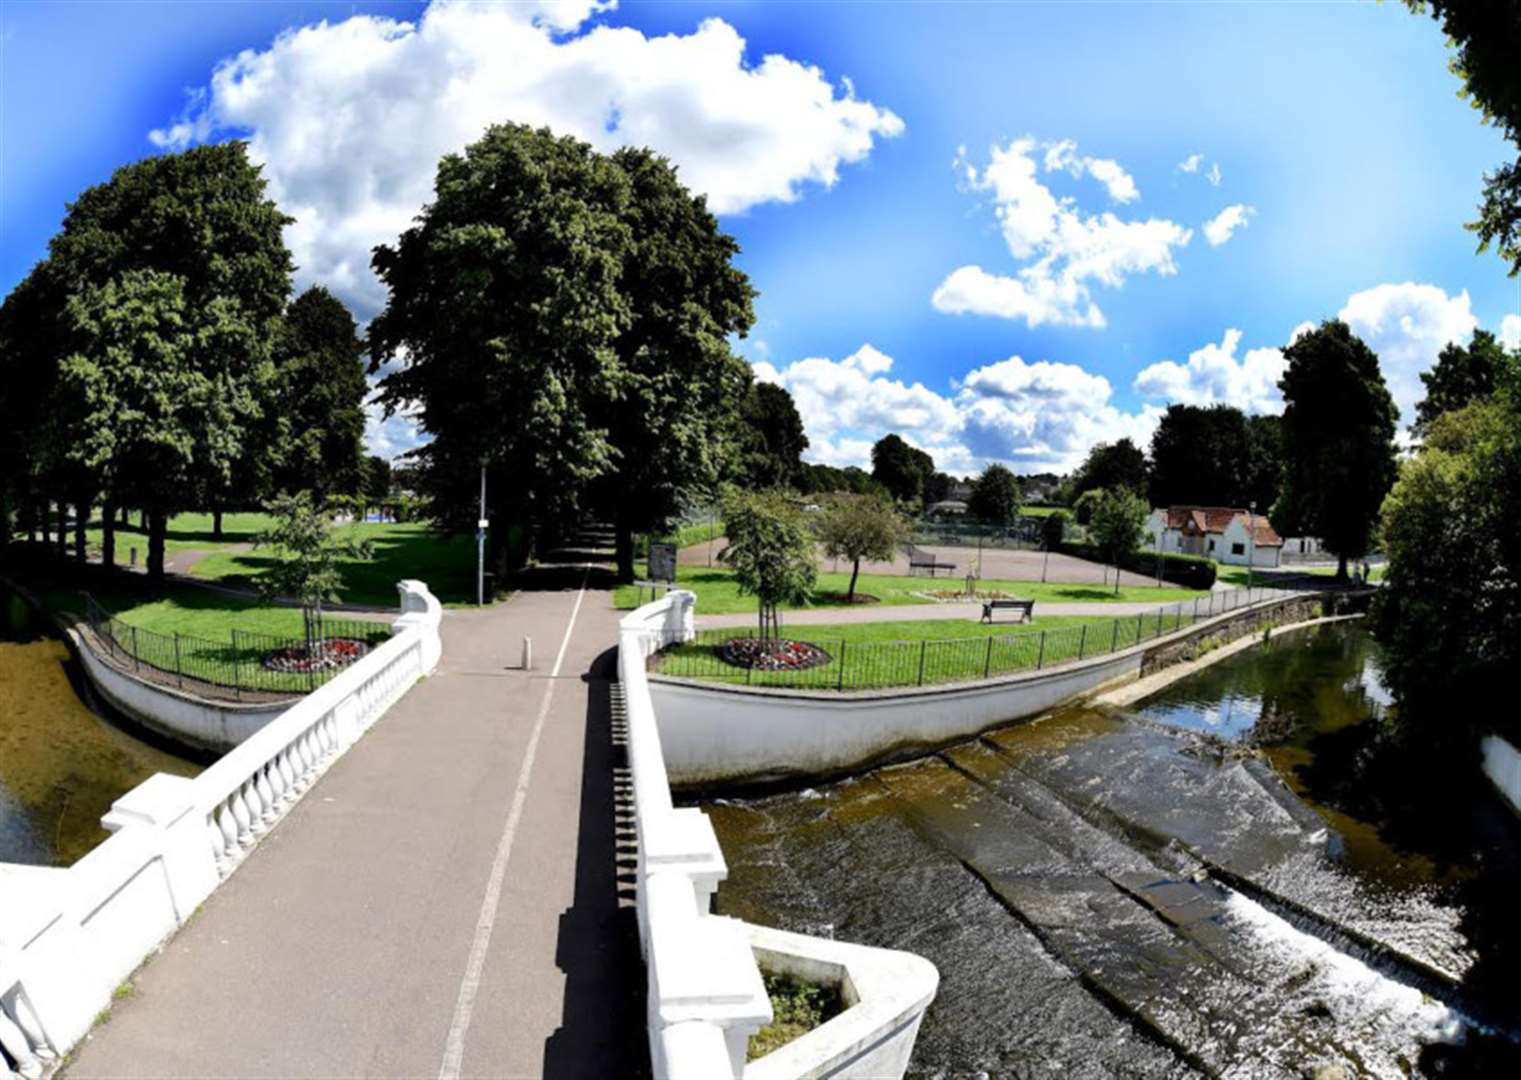 Local people urged to take part in survey on Grantham's Wyndham Park